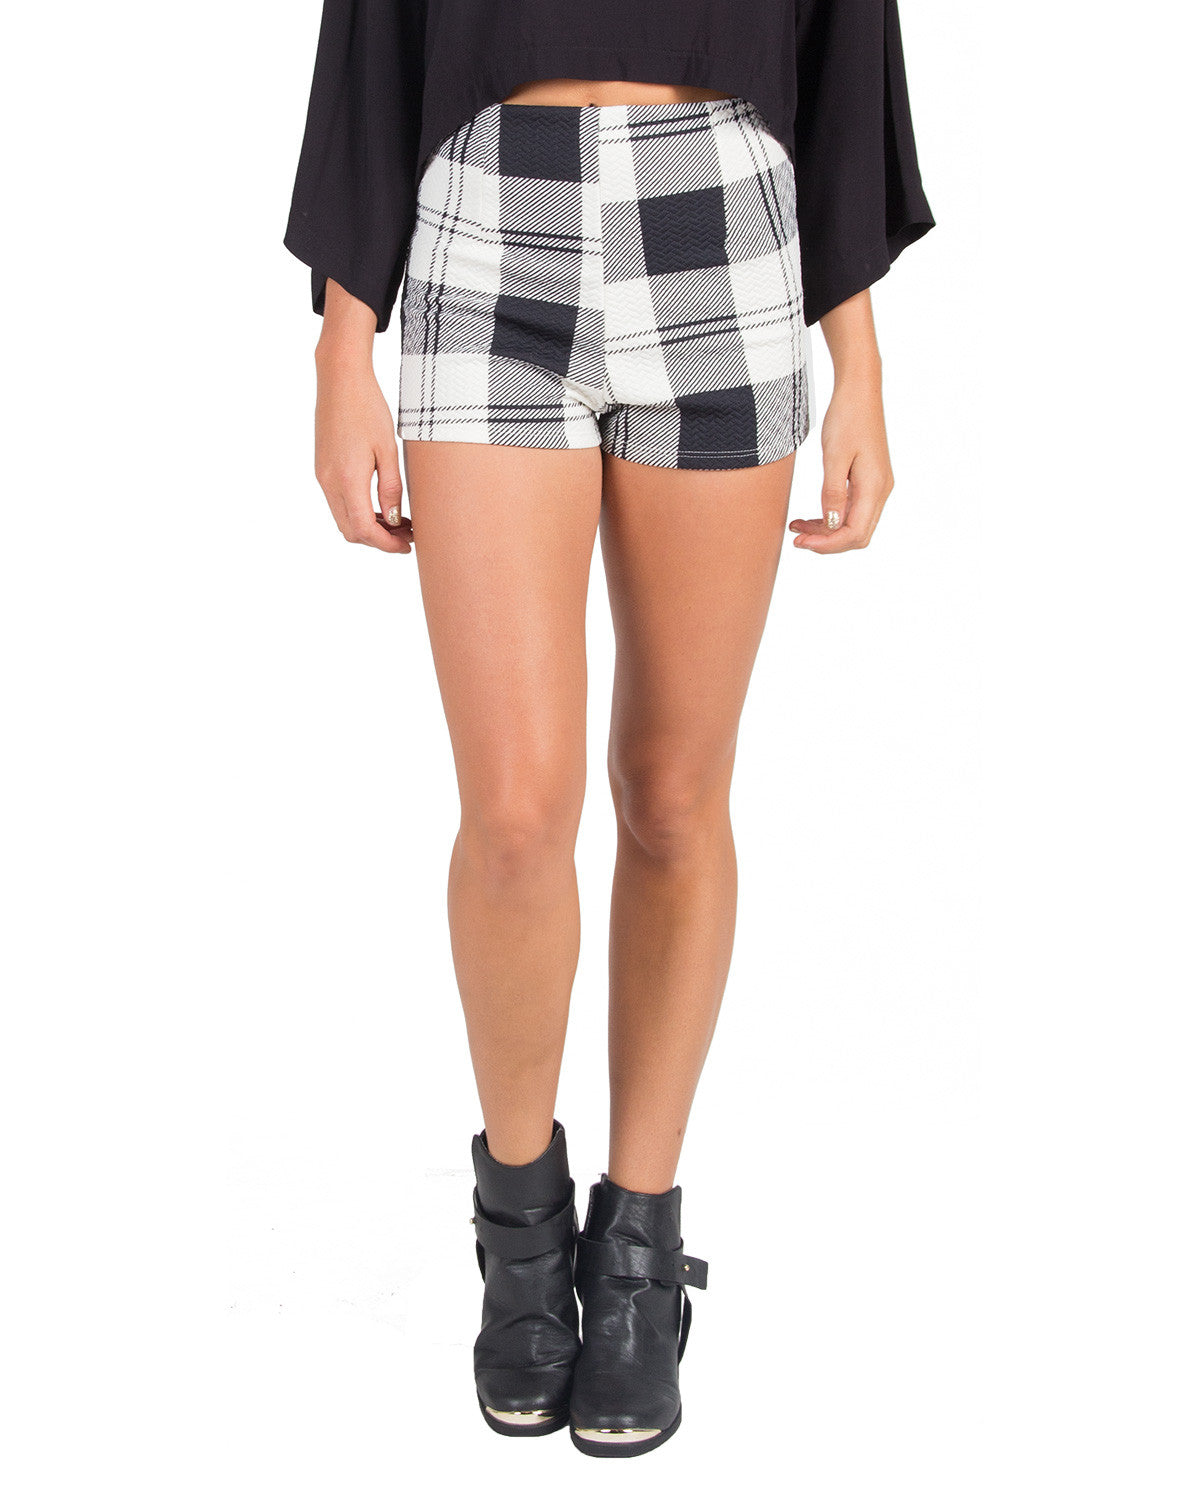 Graphic Plaid Shorts - Large - 2020AVE